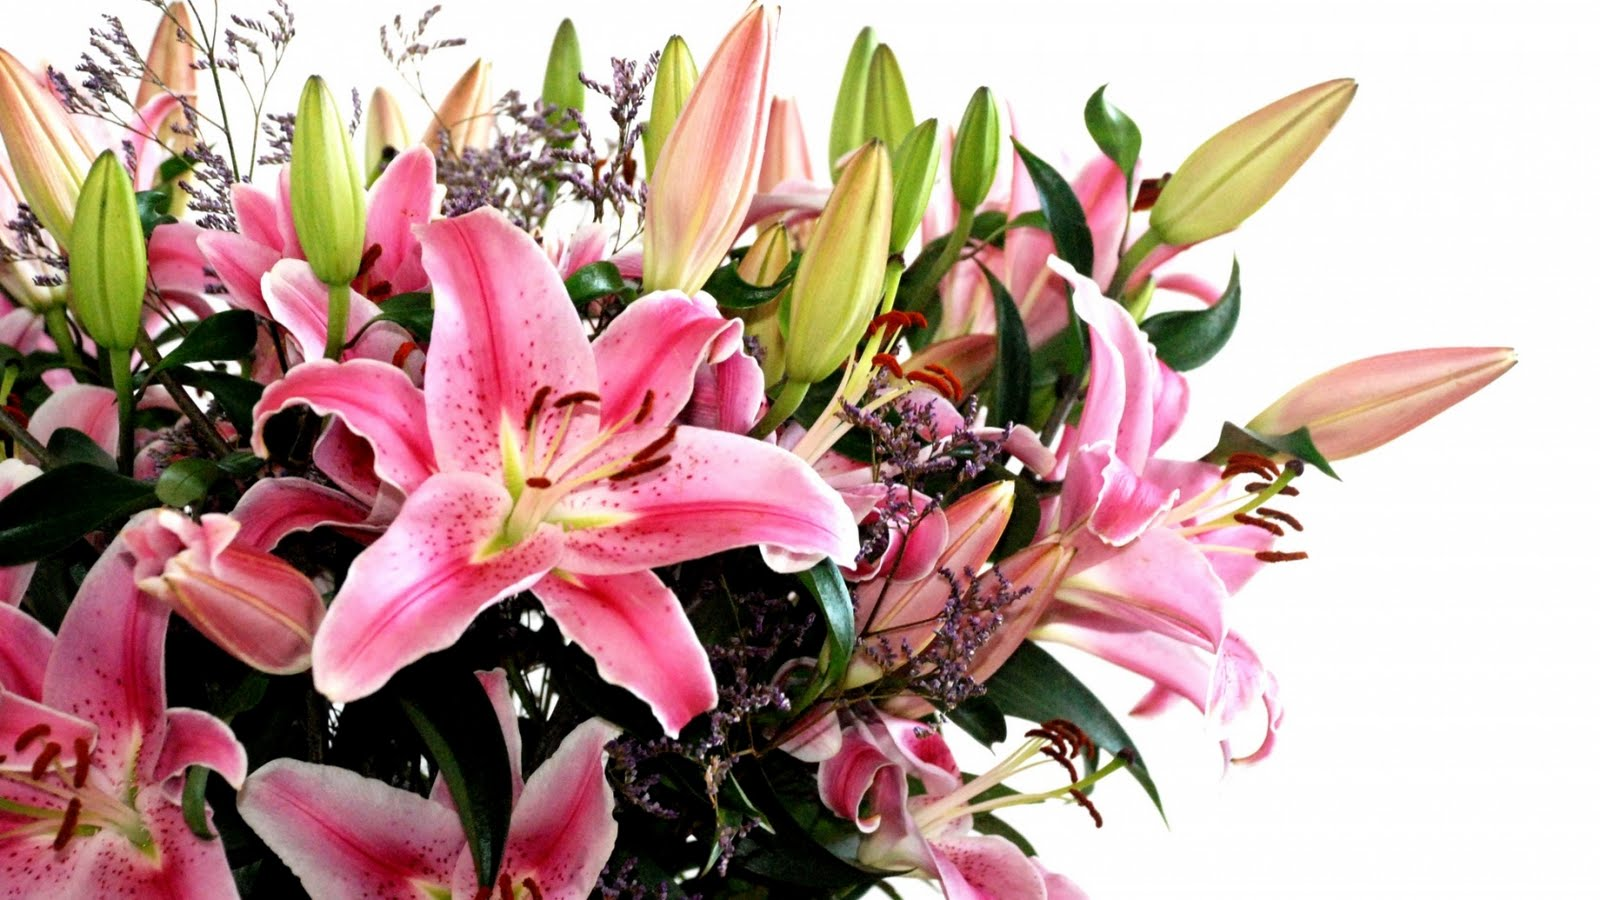 bouquet_of_lilies.jpg